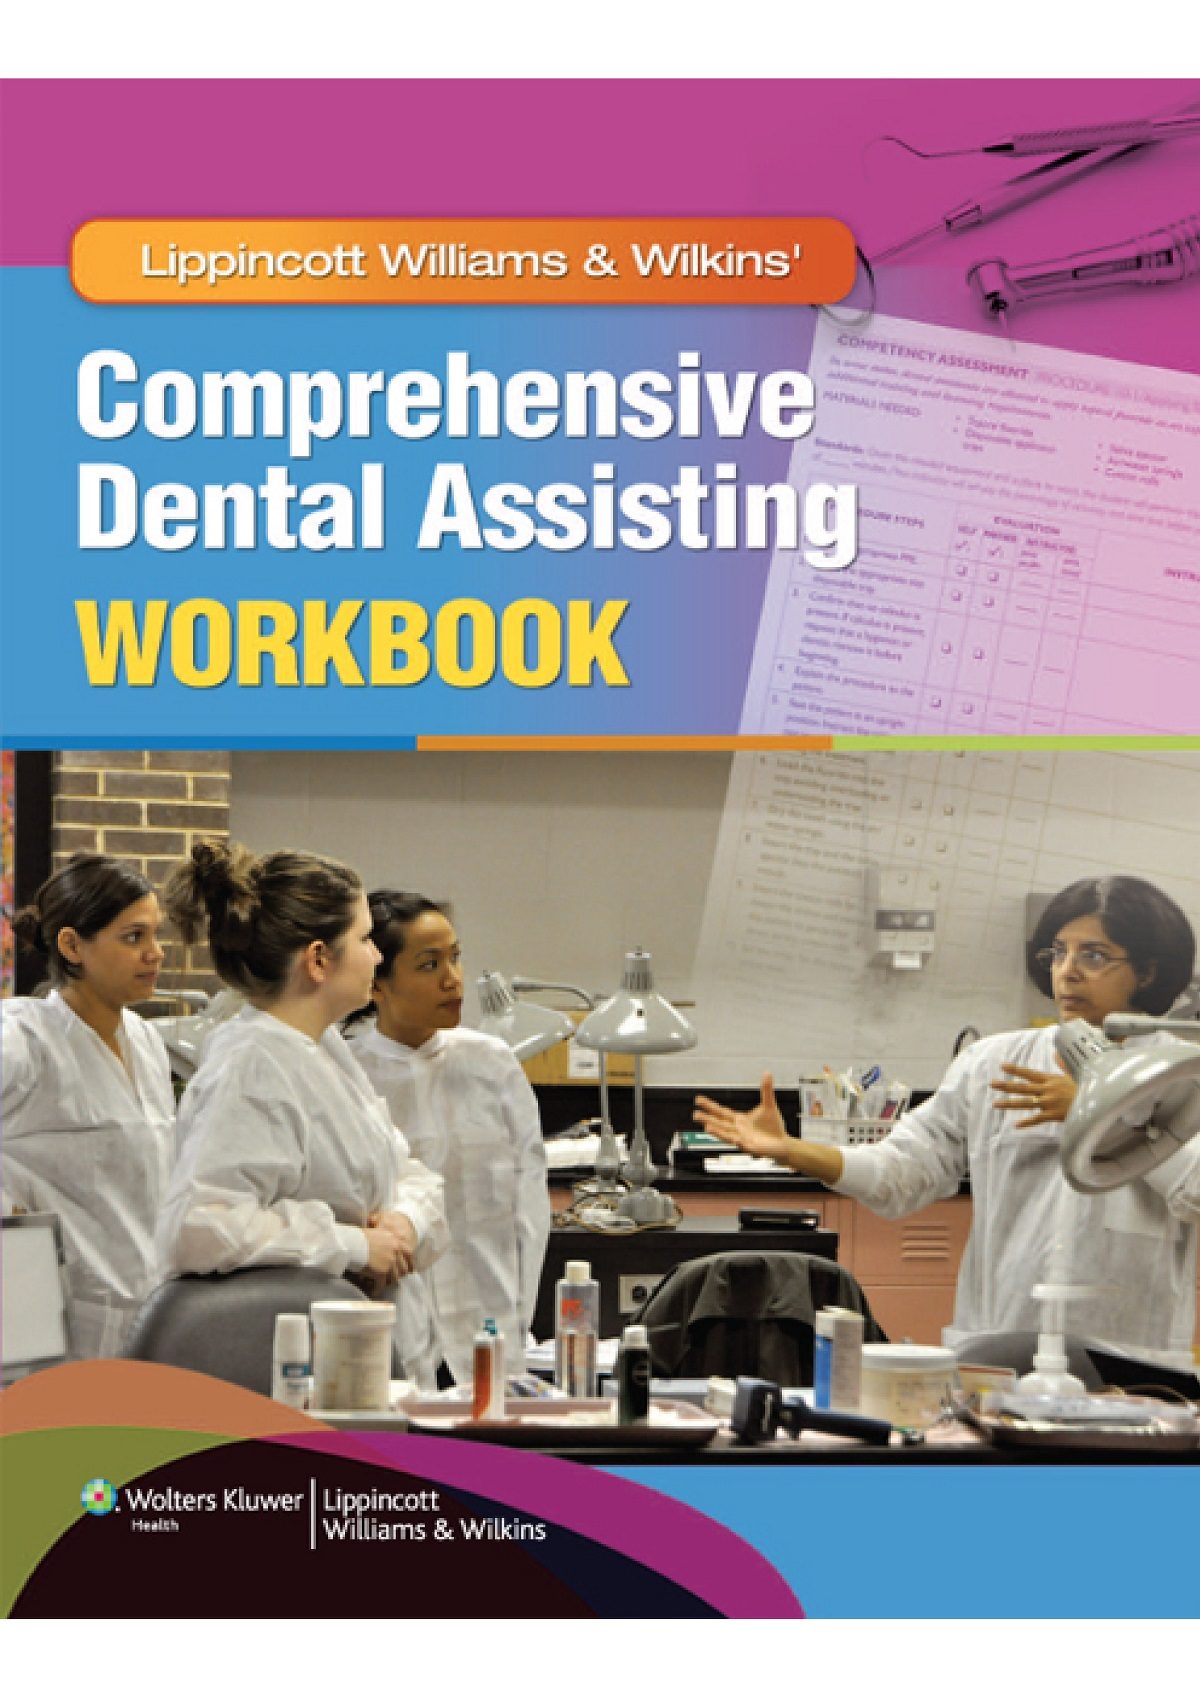 Comprehensive Dental Assisting Workbook